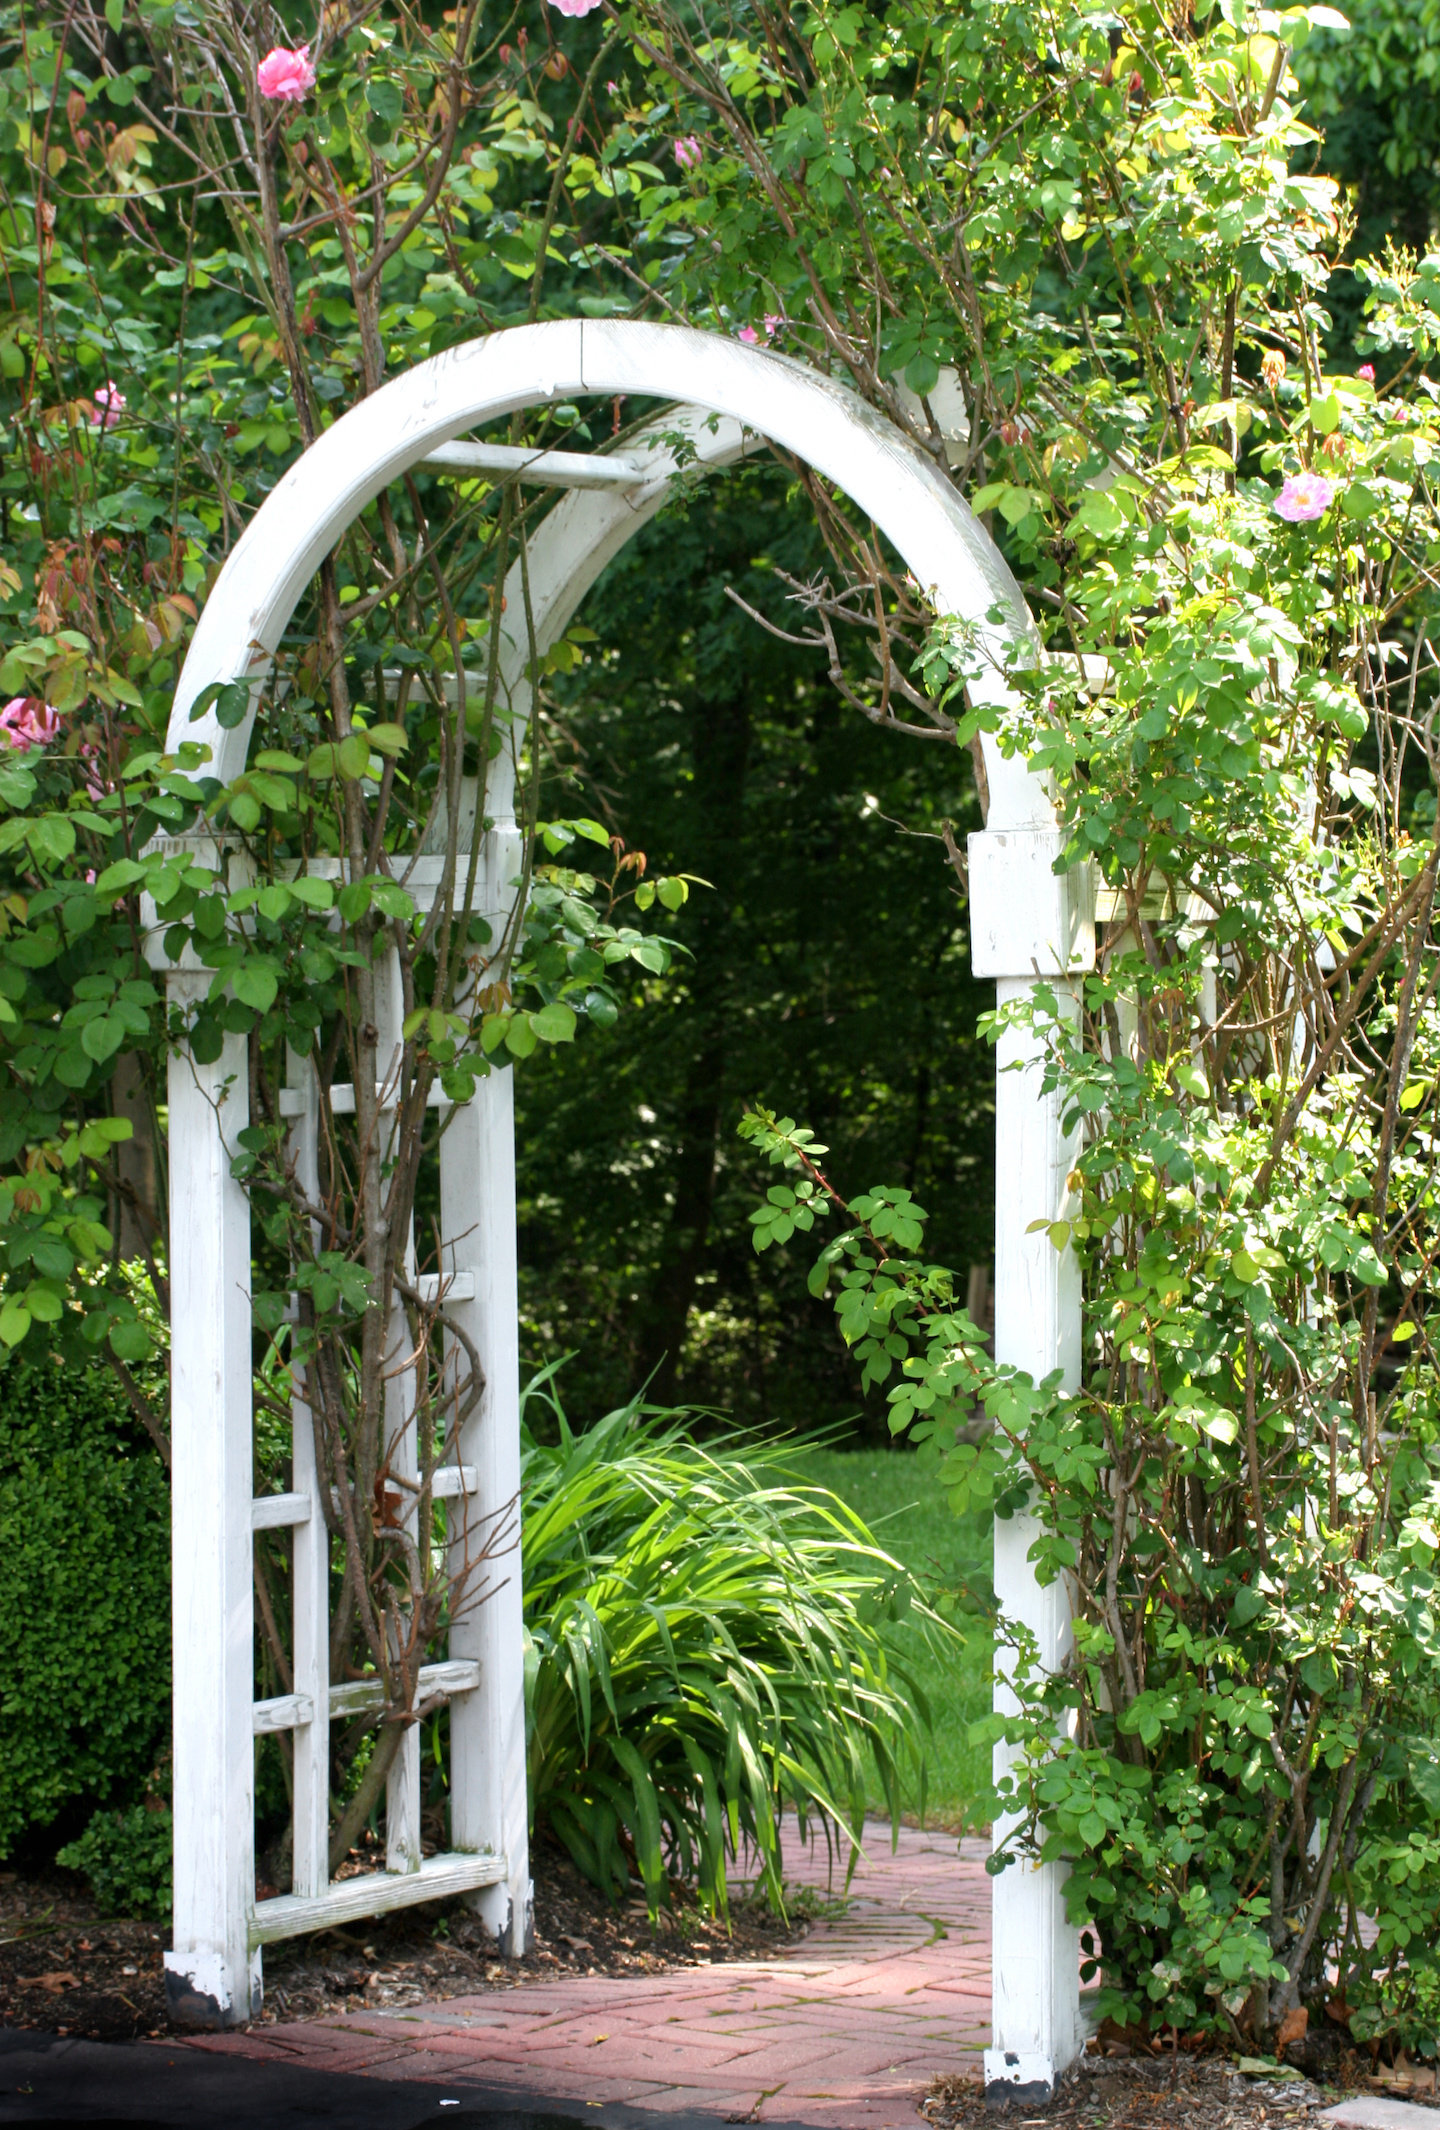 Garden Arbor or arch with climbing plants.